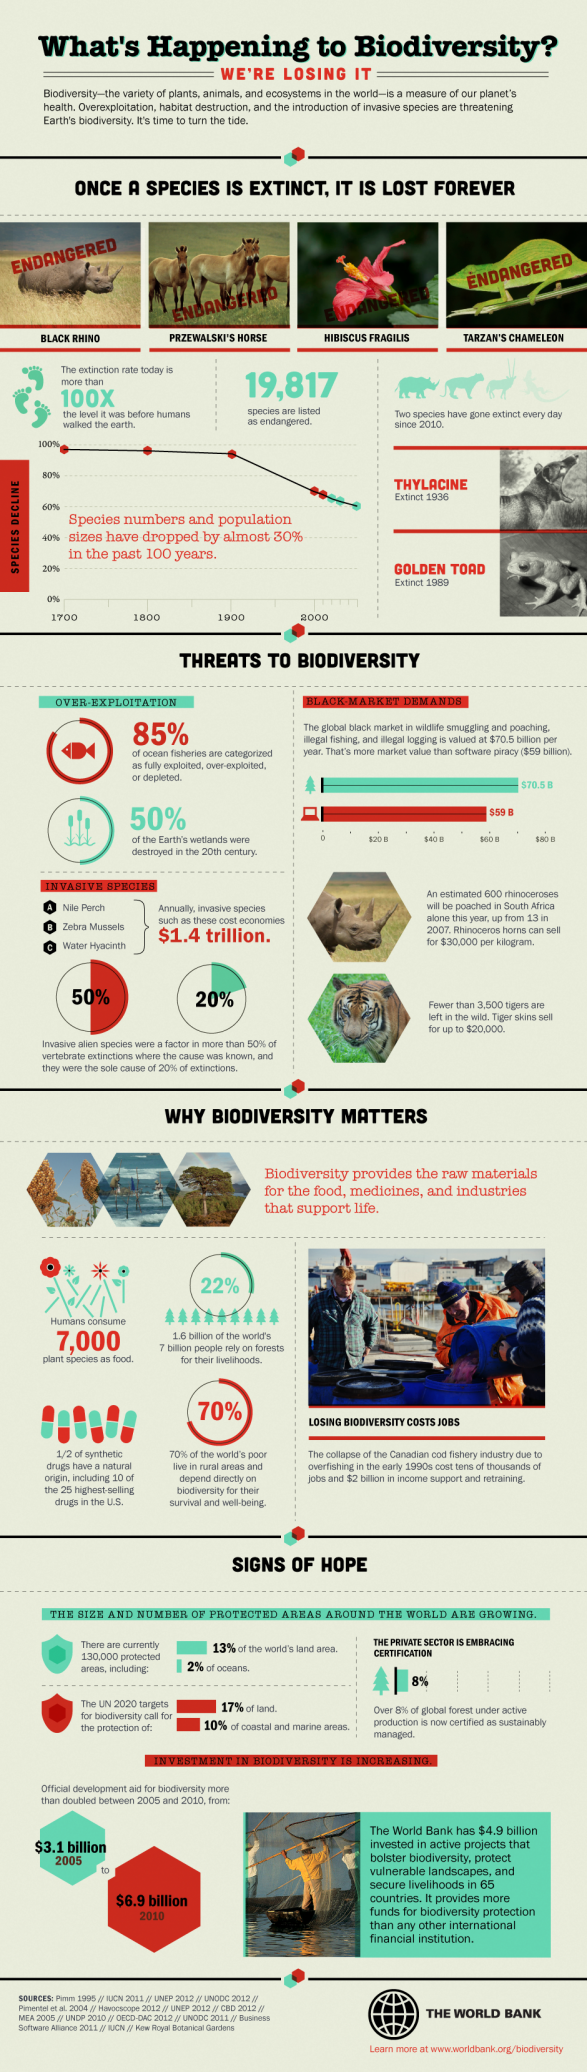 Whatâs Happening to Biodiversity?